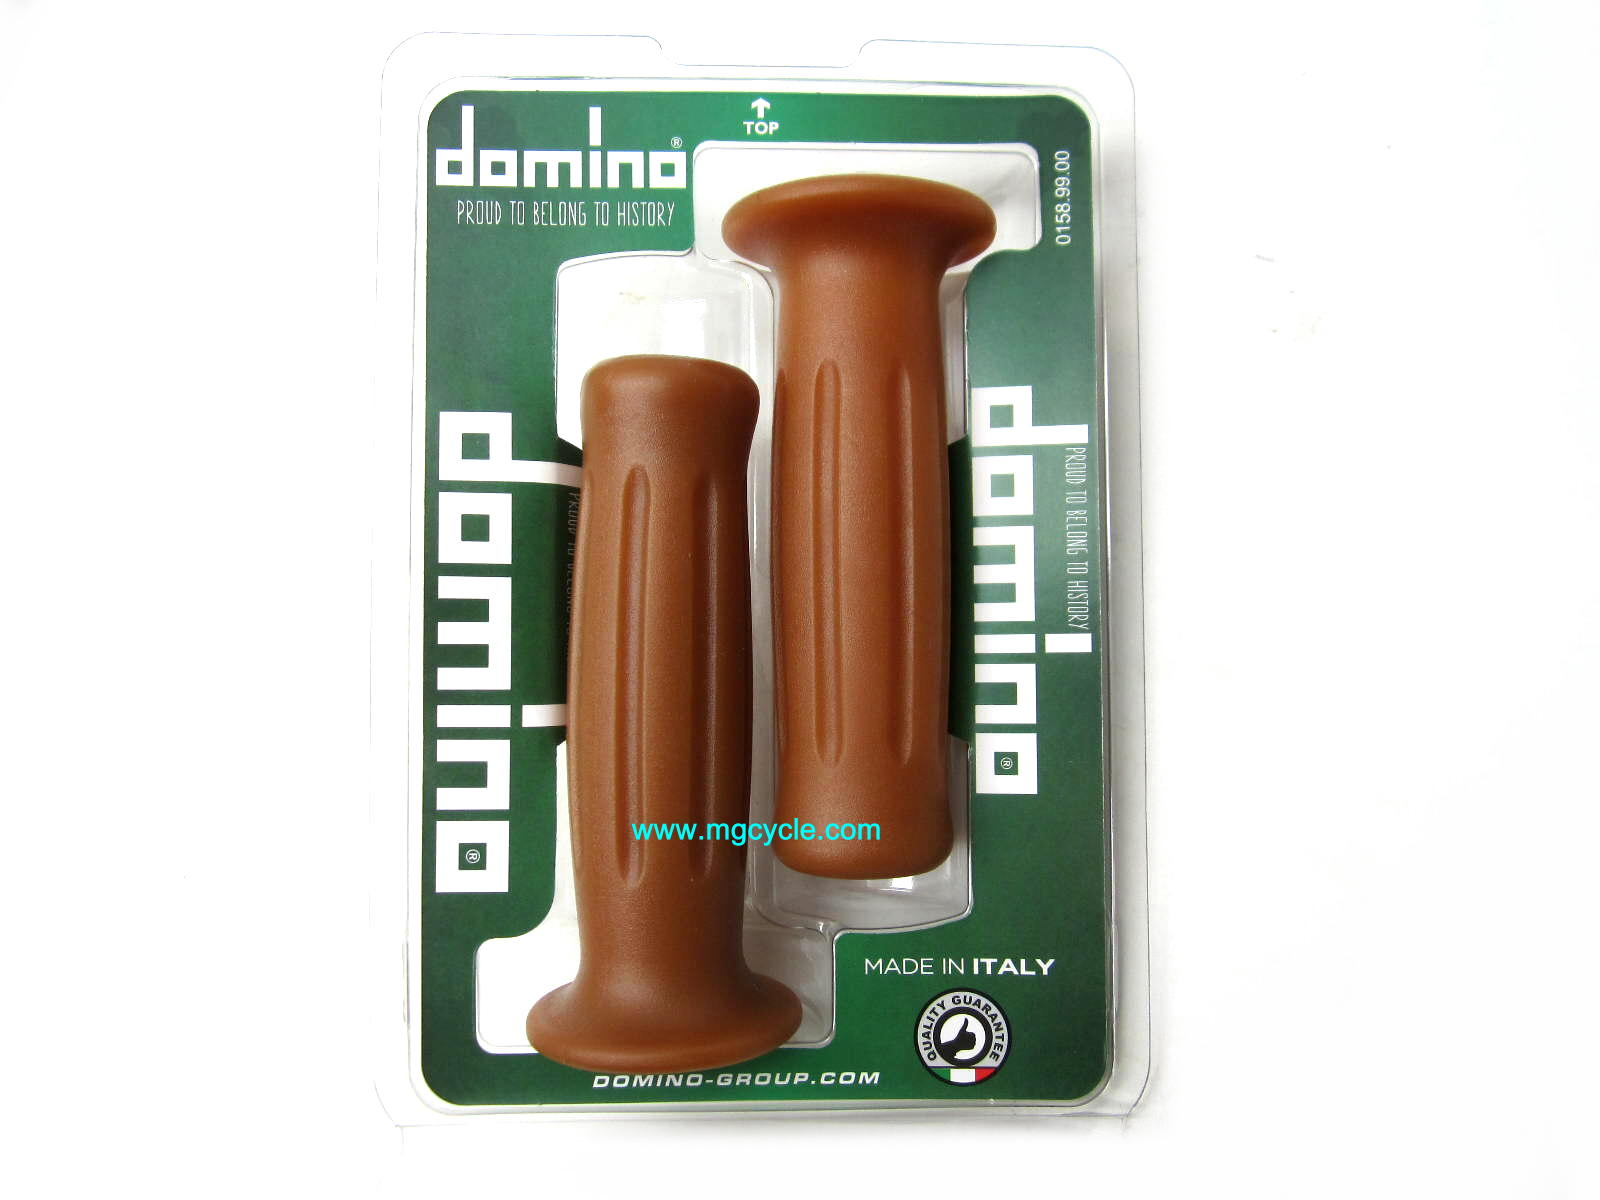 Italian Domino Retro Vintage Grips, classic natural color